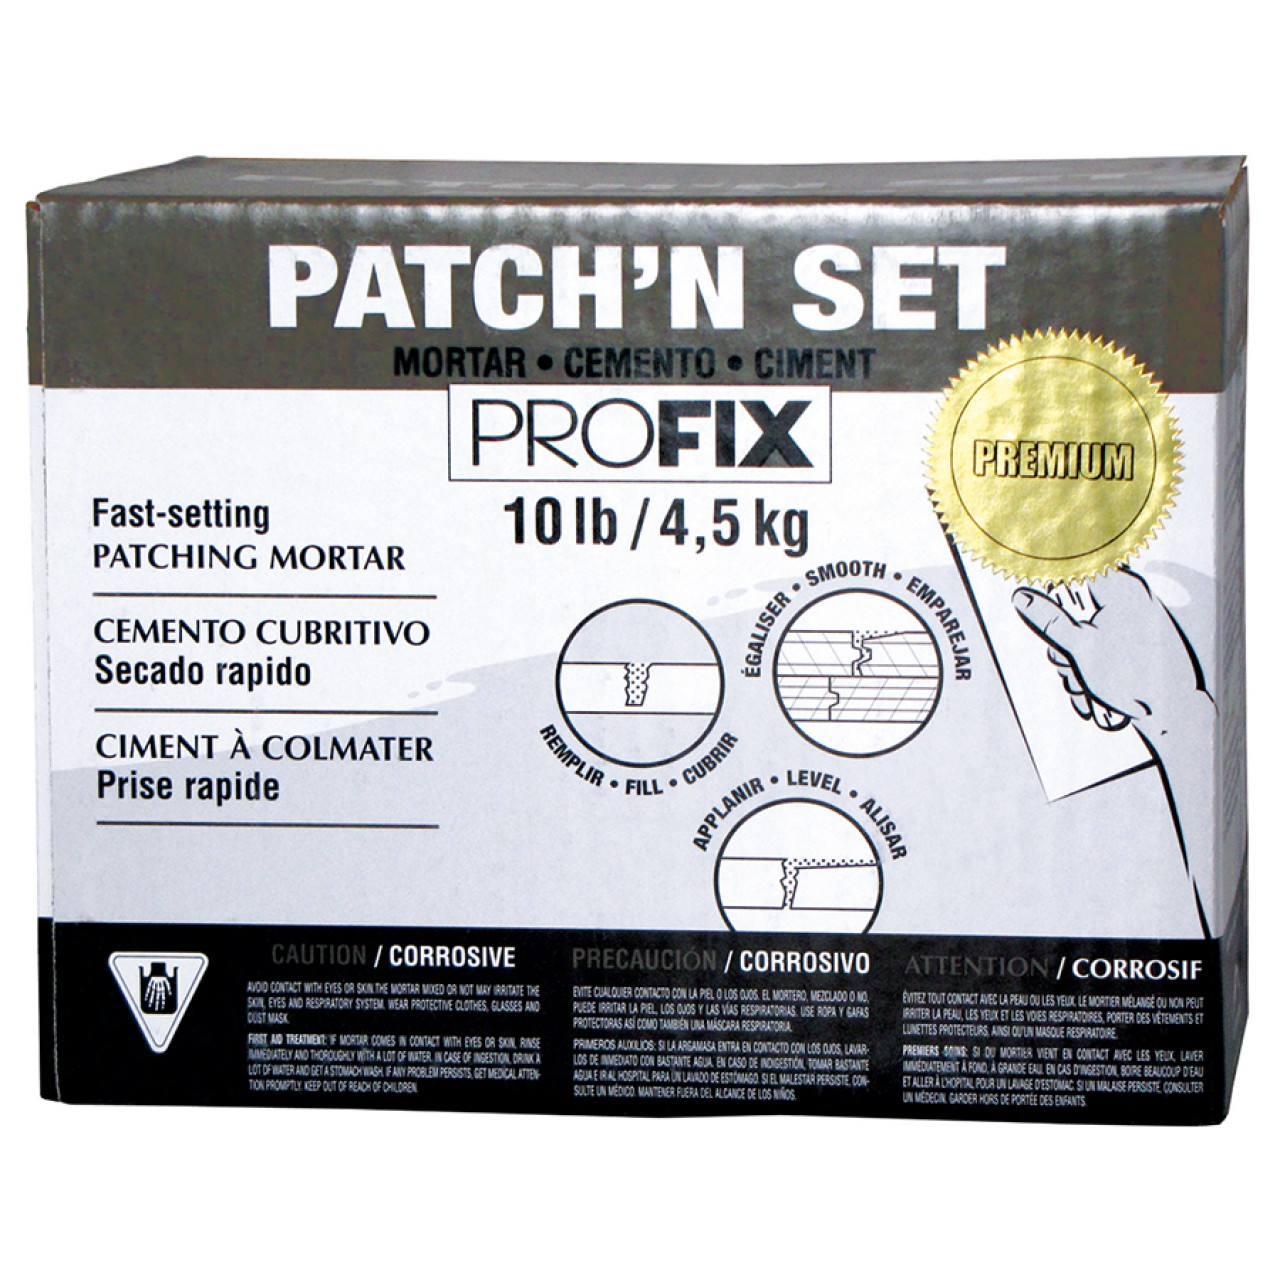 profix systems patch 39 n set premium ciment colmater. Black Bedroom Furniture Sets. Home Design Ideas